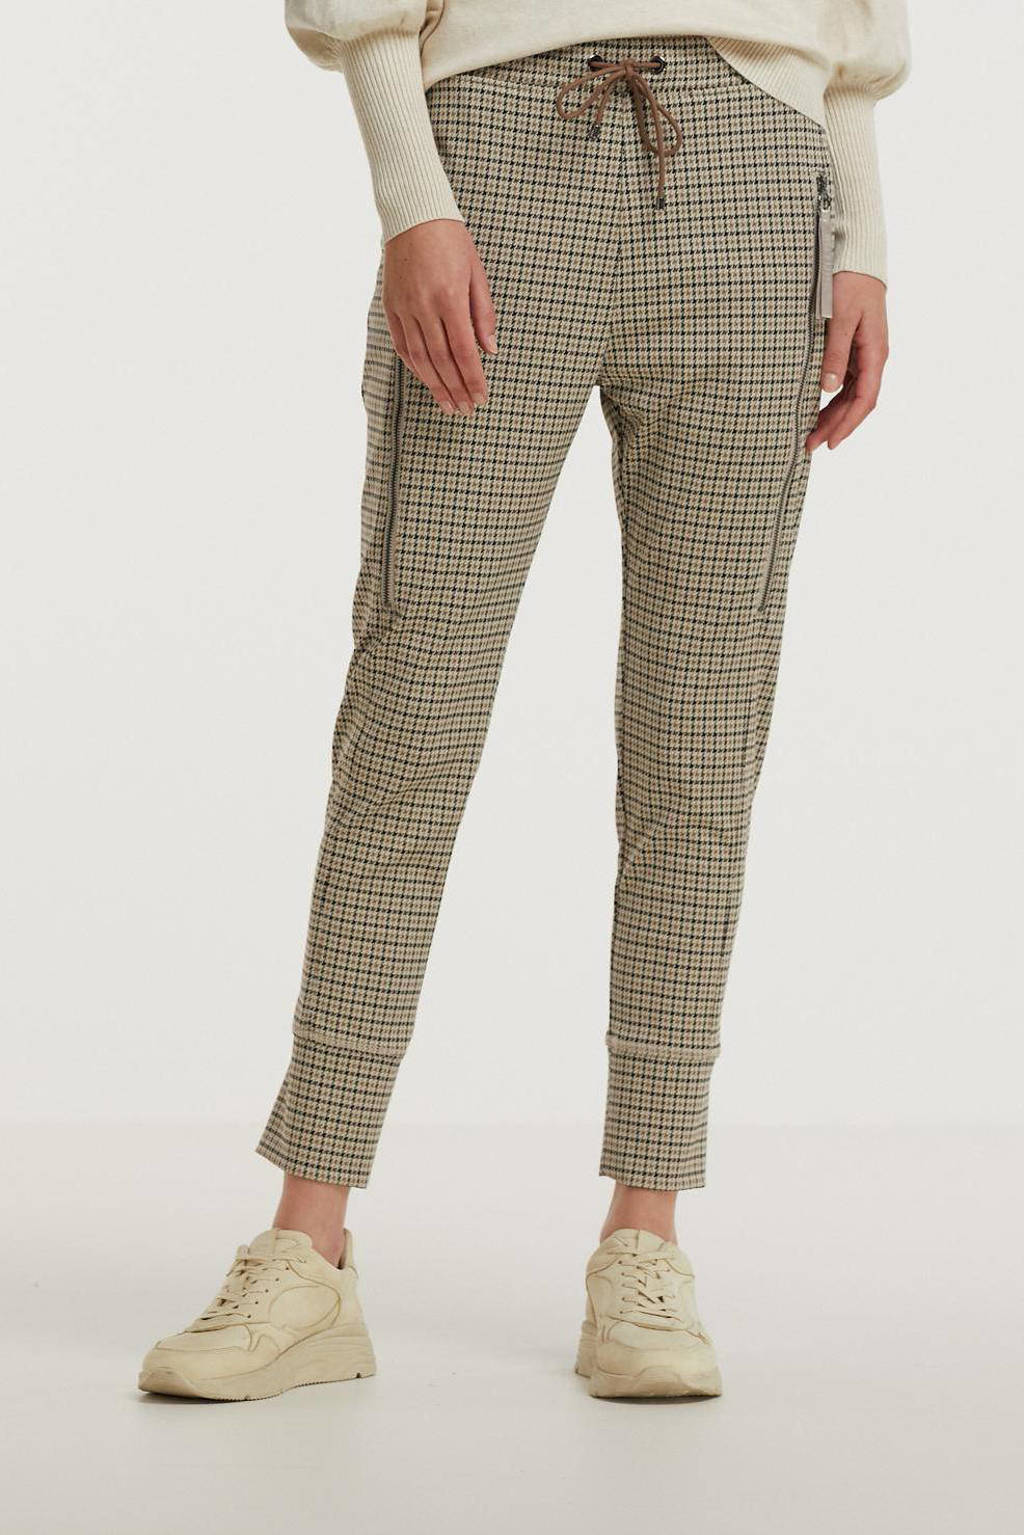 MAC tapered fit broek Future 2.0 met pied-de-poule pearl white check, Pearl white check